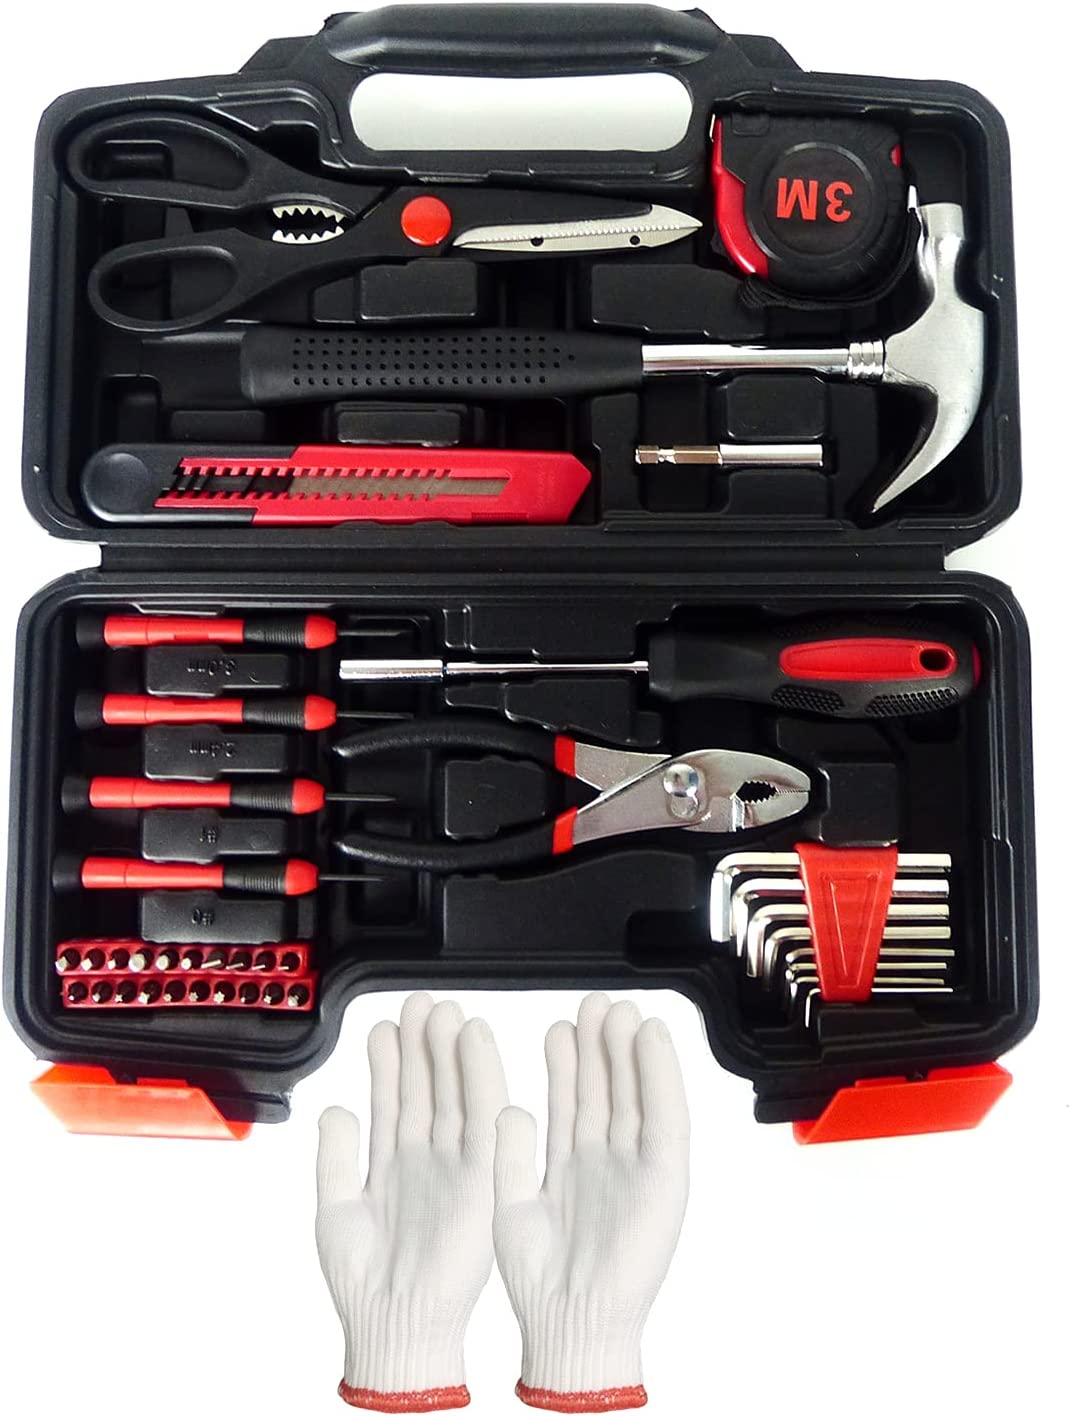 All Purpose Household Hand Basic General Tool Kit 40-Piece With Gloves,Plastic Toolbox Storage Case-Includes All Essential Repair Tools Sets For Home,Garage,Office,Dormitory Use